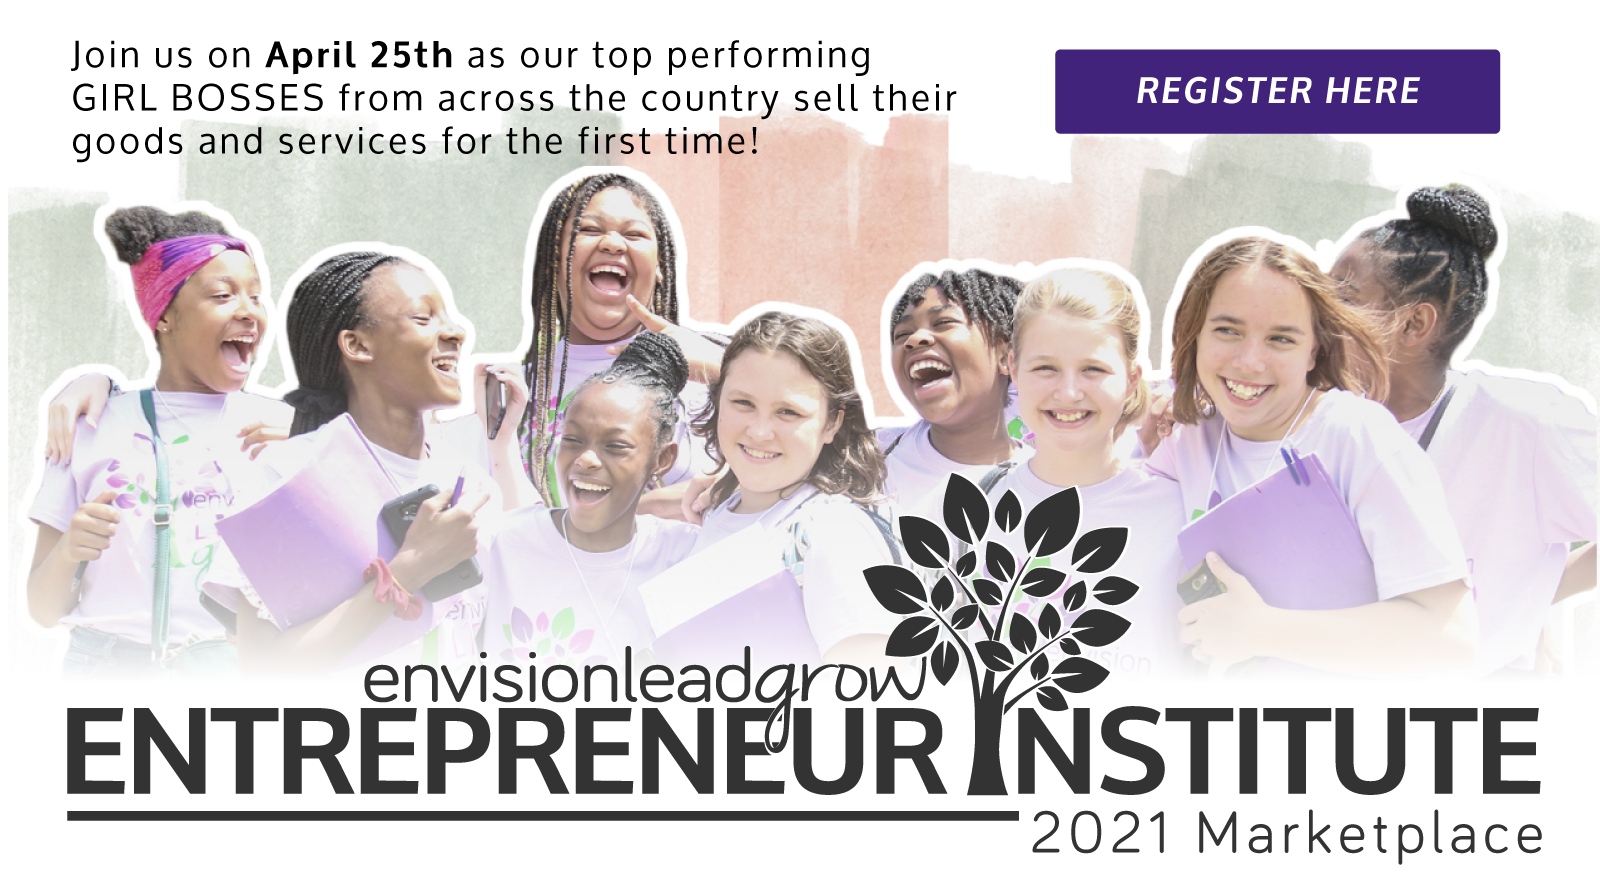 Join us on April 25th as our top performing GIRL BOSSES from across the country sell their goods and services for the first time! 2021 MARKETPLACE - ELG Entrepreneur Institute (REGISTER HERE)